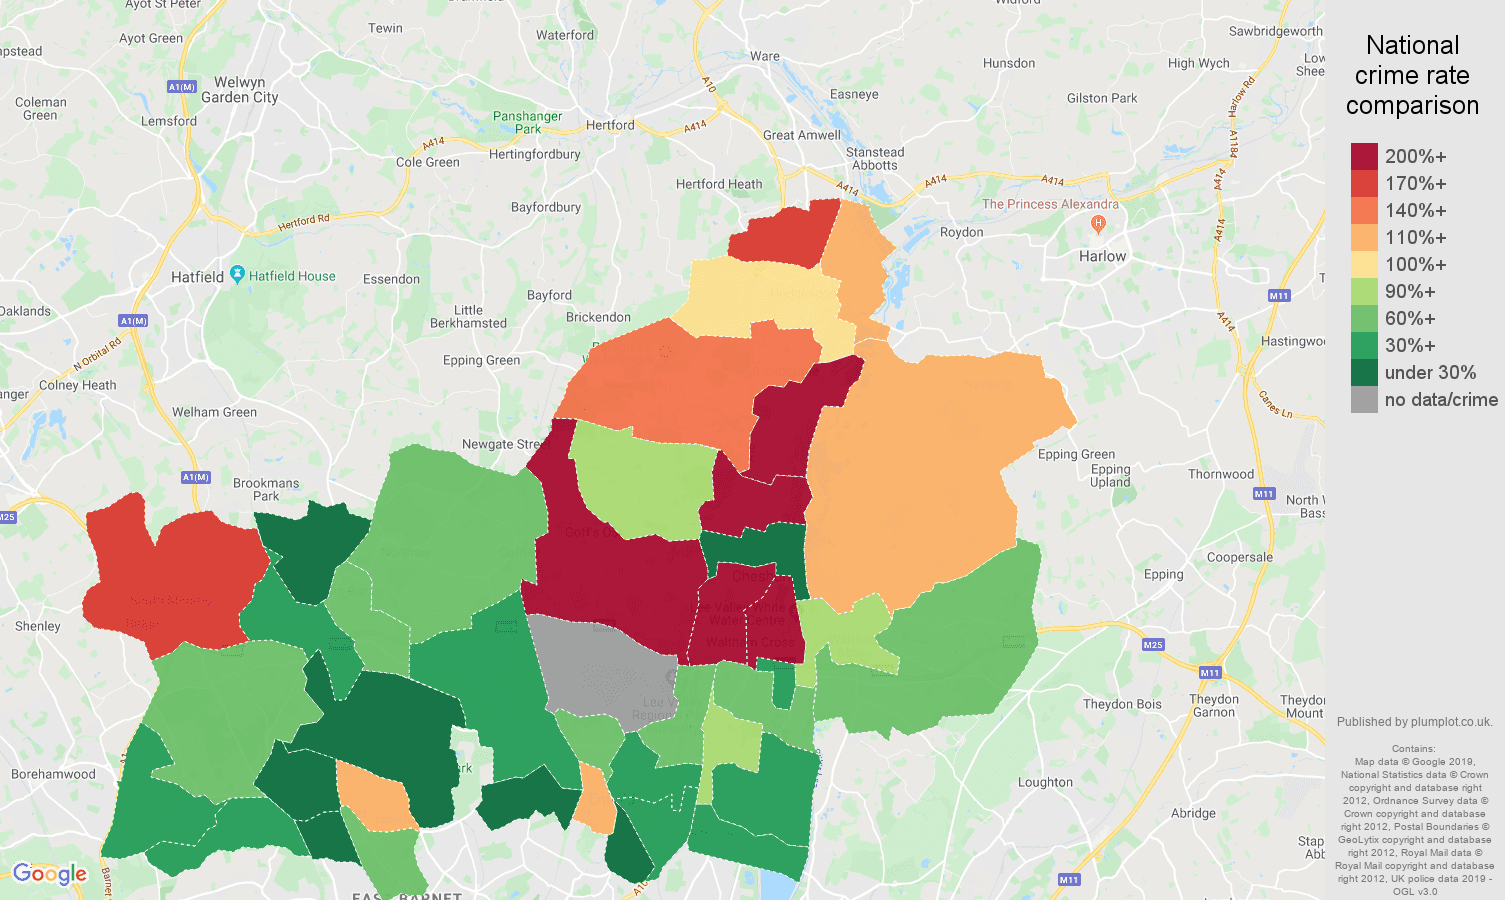 Enfield other crime rate comparison map